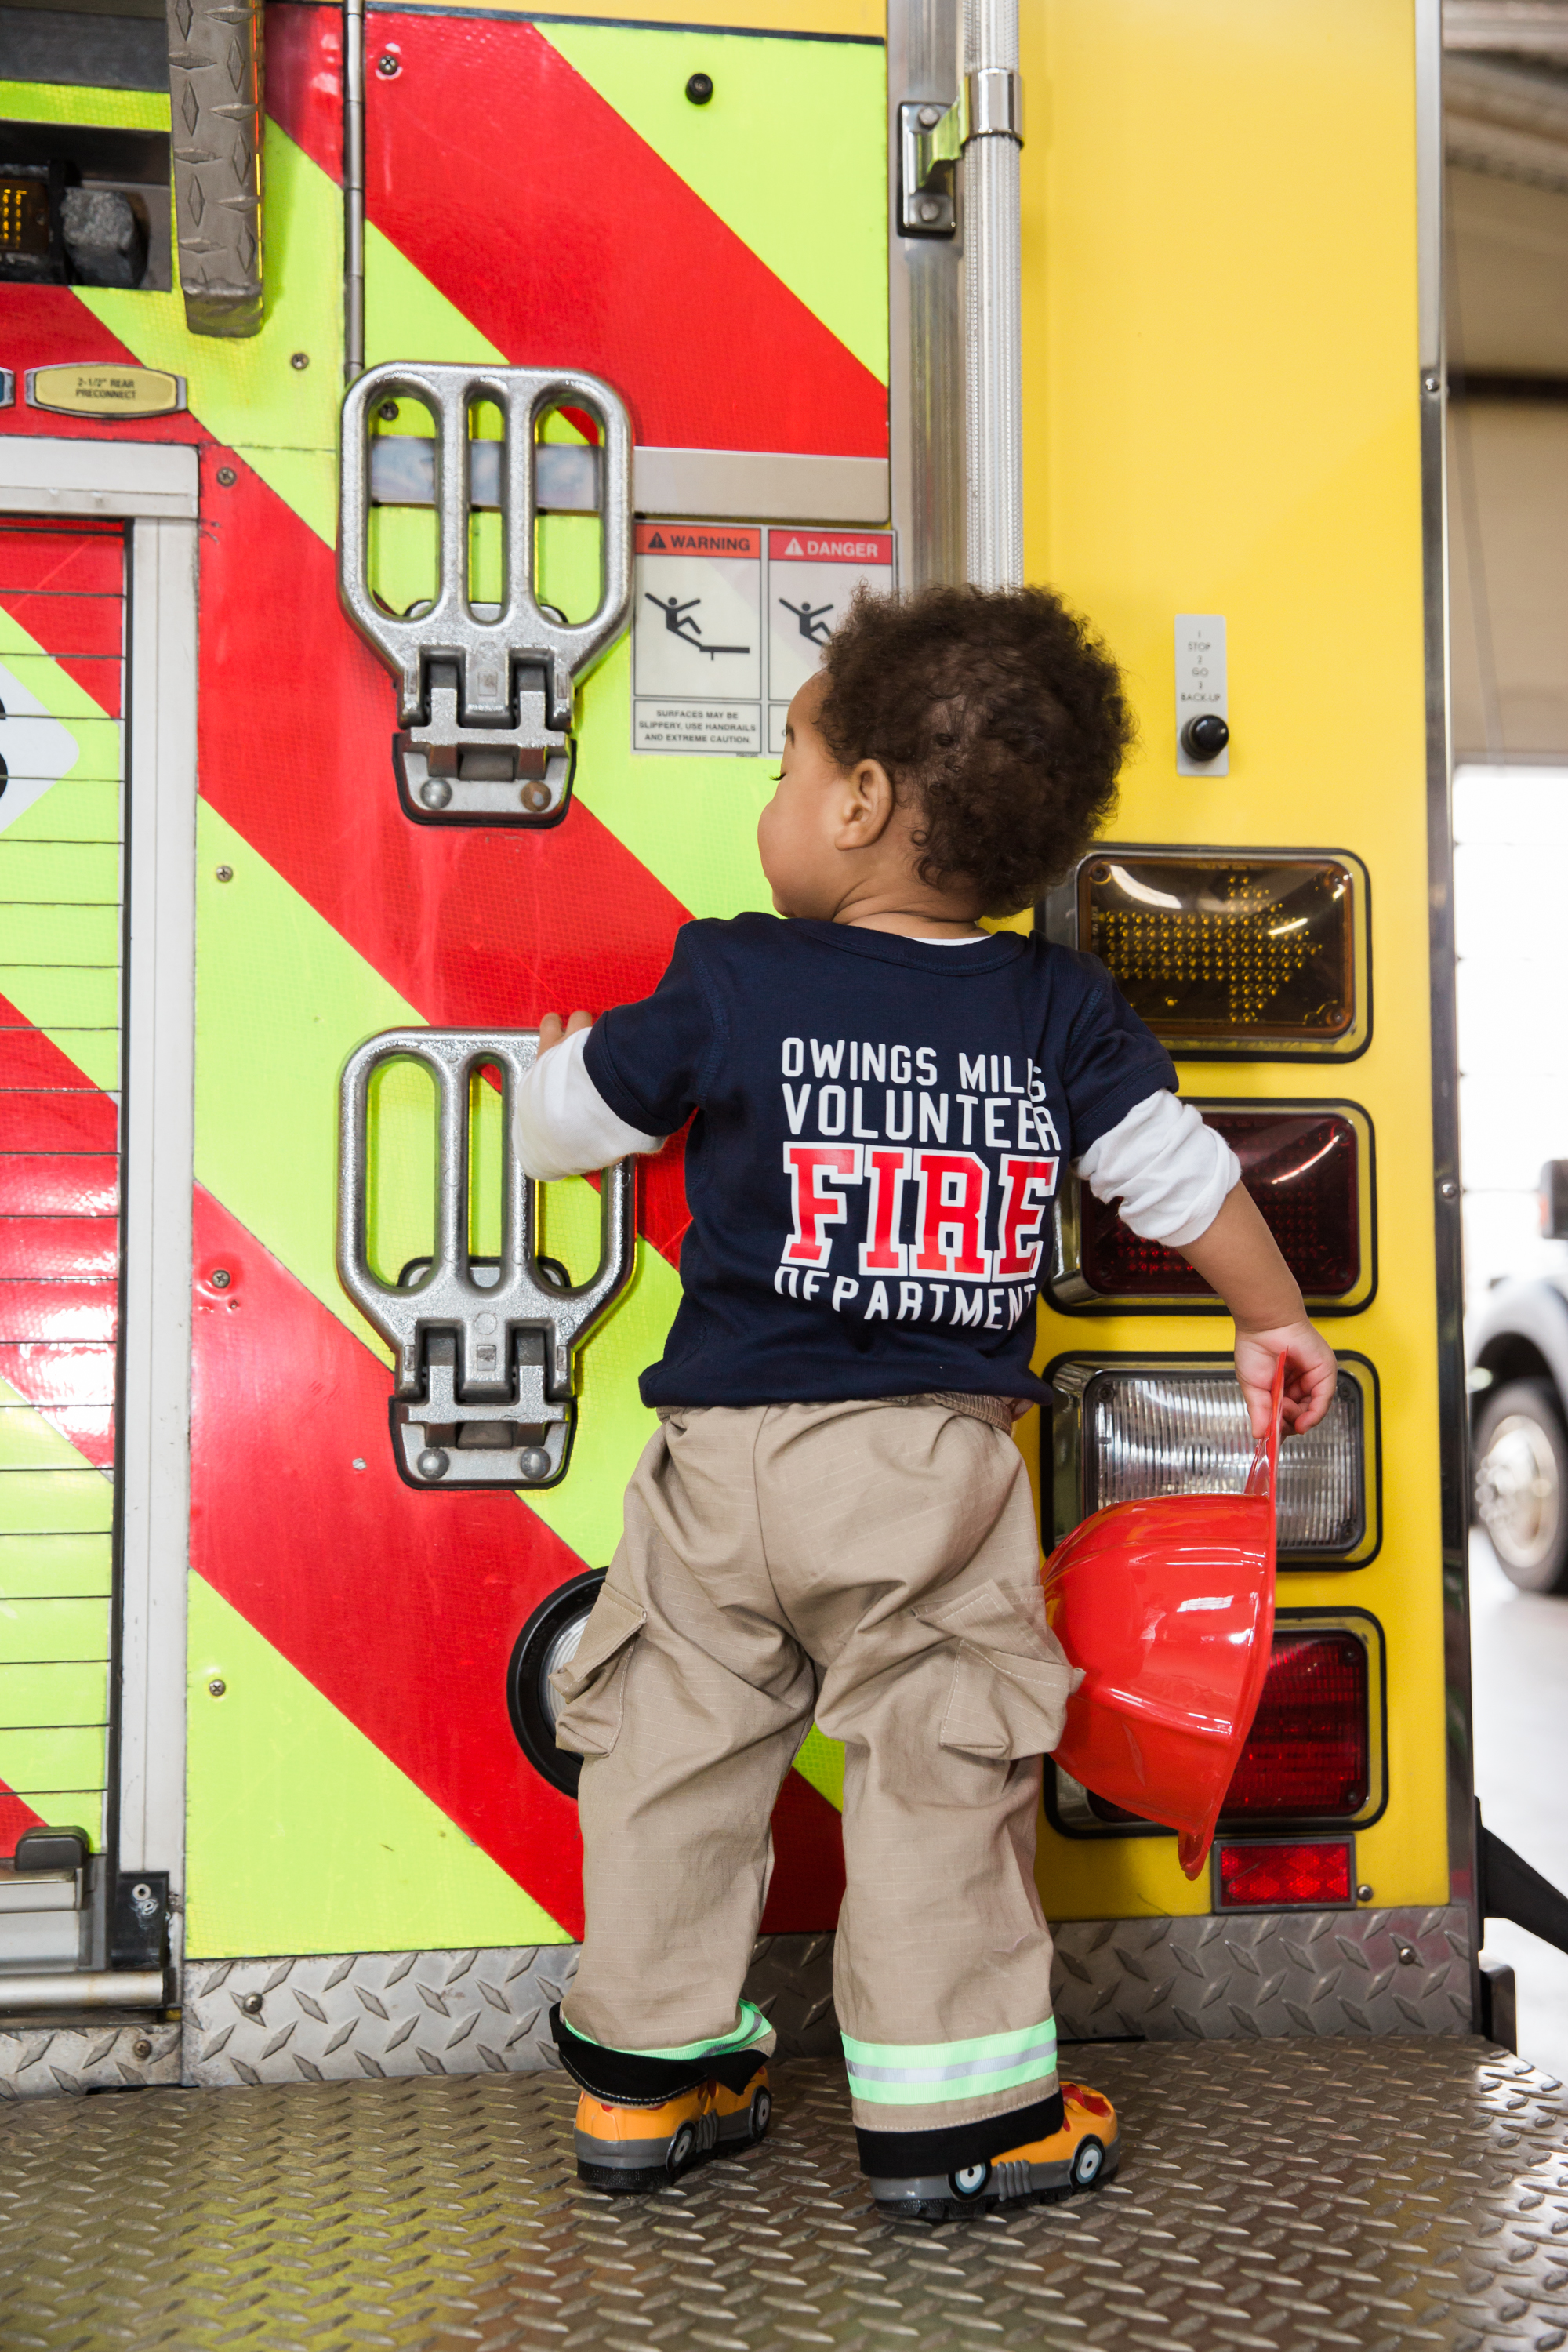 Fireman Birthday Party Ideas  Decorations Owings Mills Fire Department Maryland Family Photographers Megapixels Media Photography (26 of 55).jpg